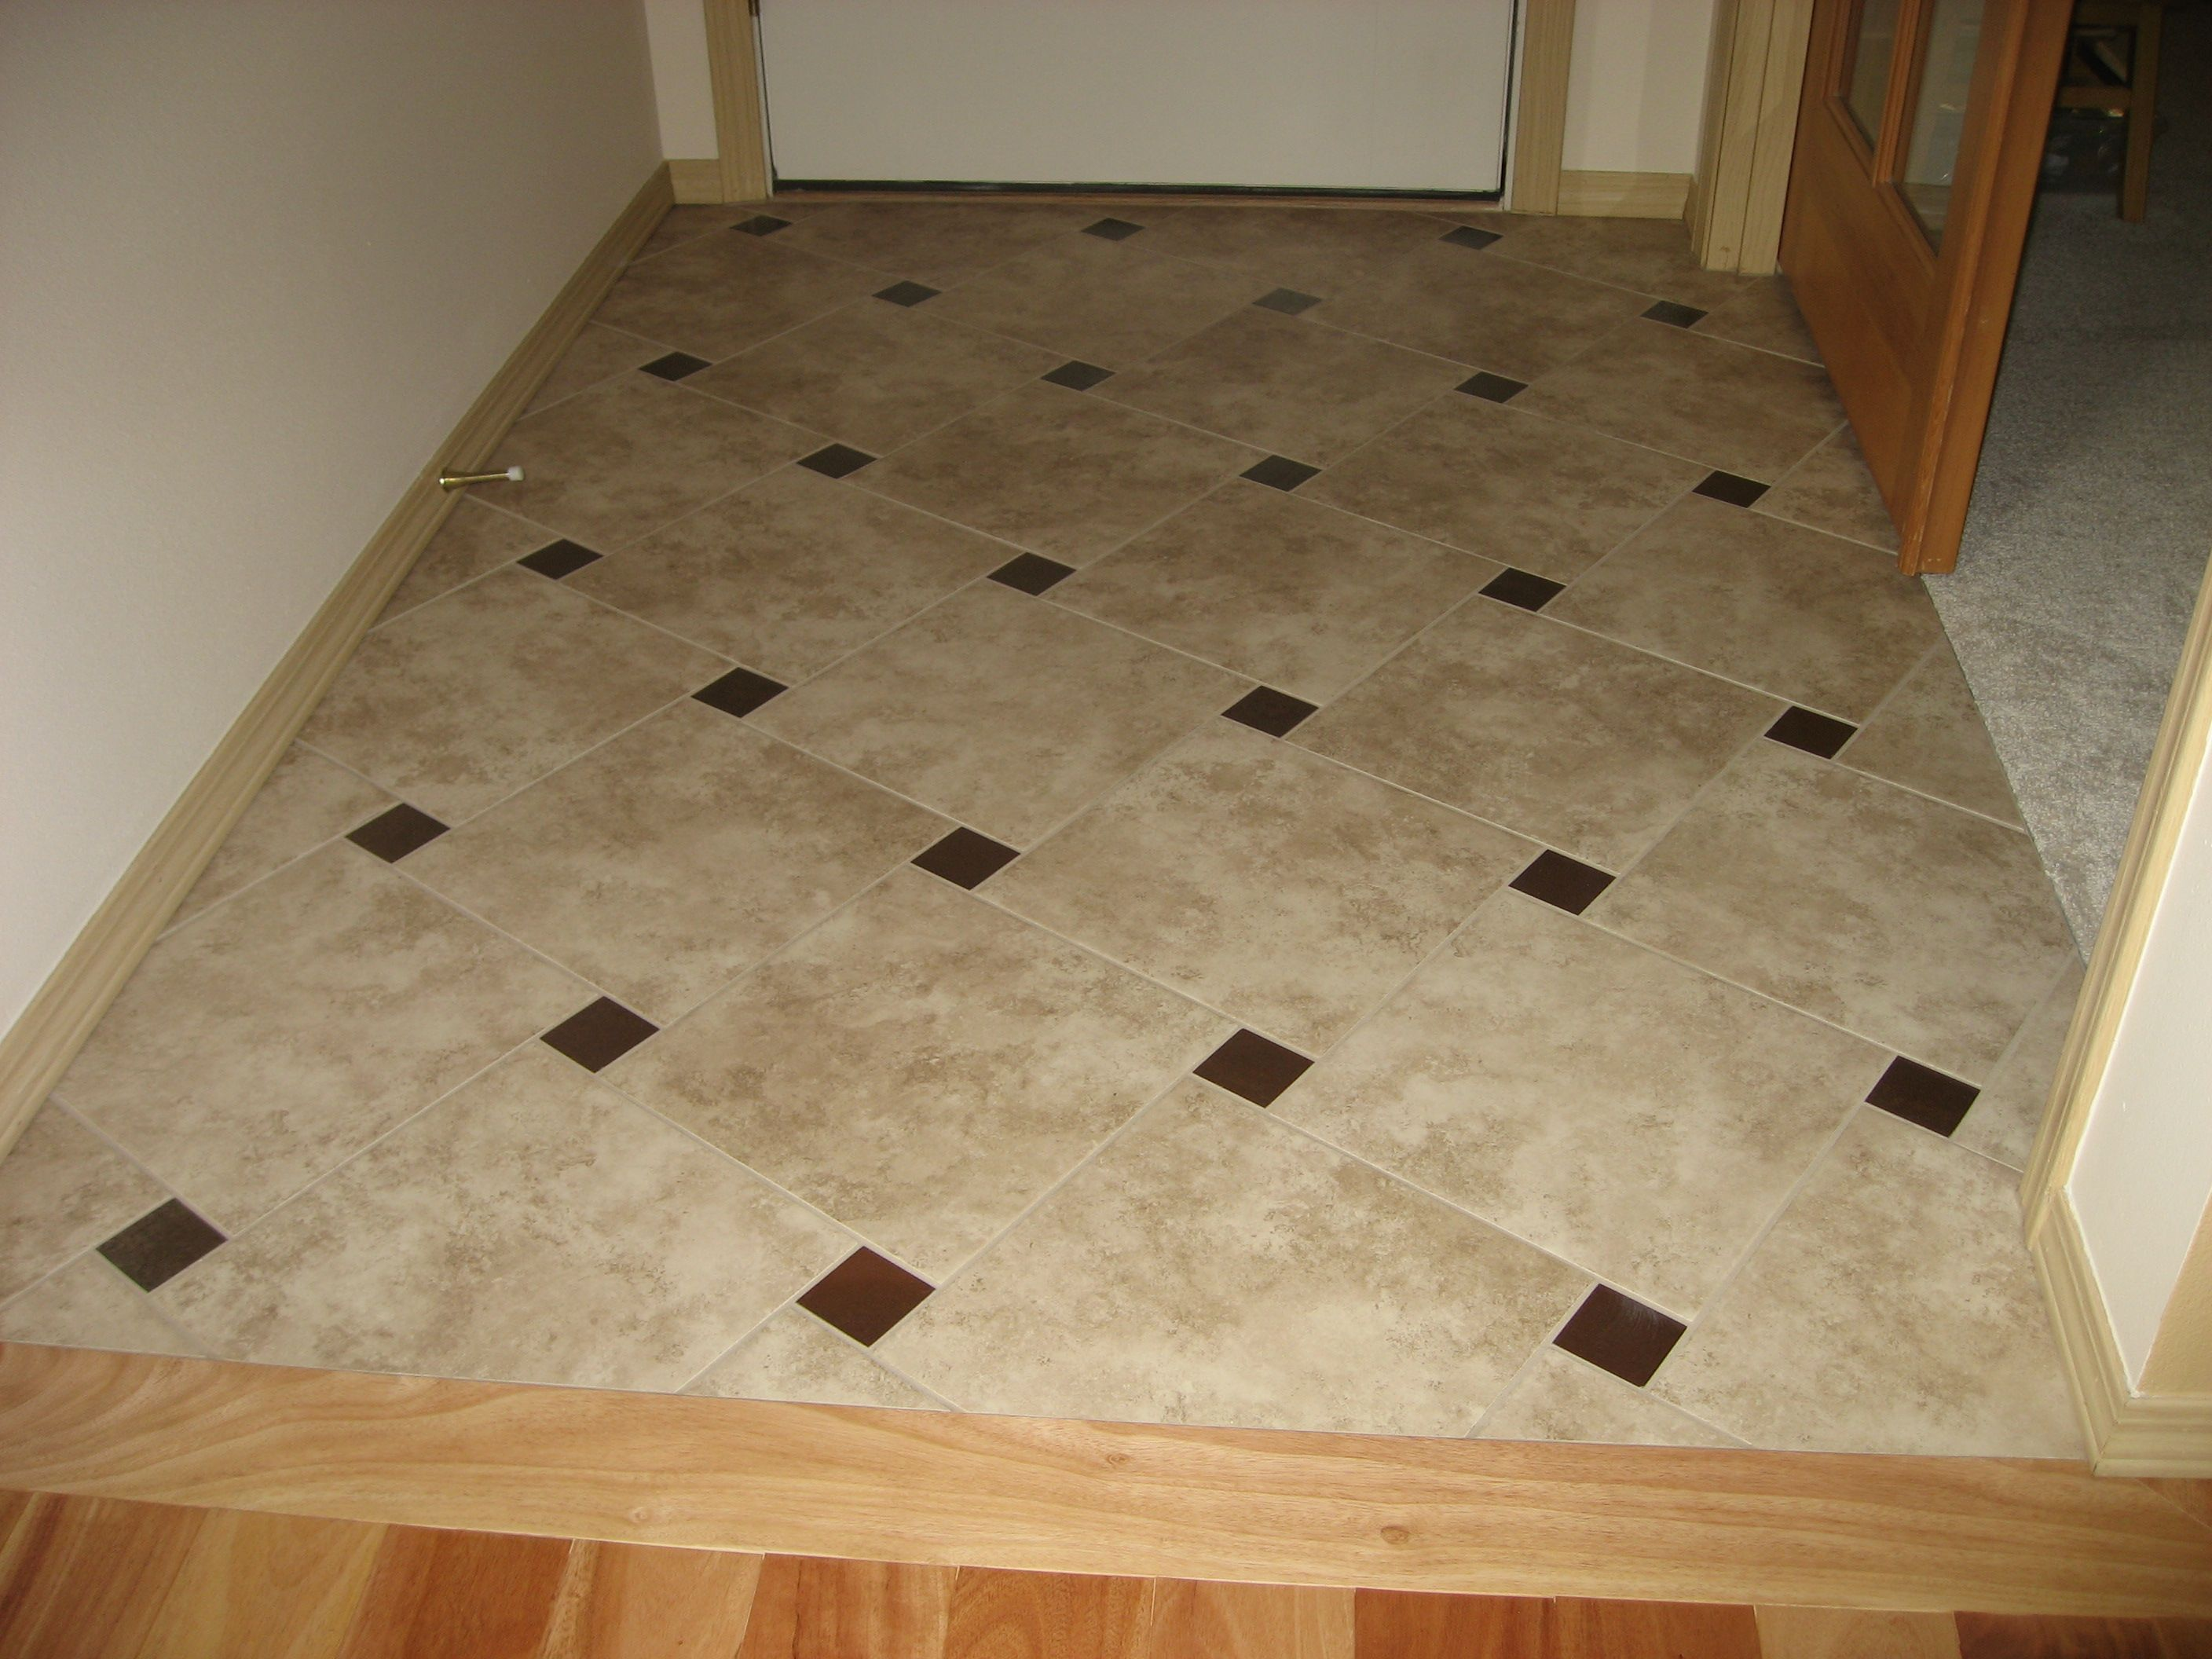 Check out our entry floor tile picture gallery for finding new fresh